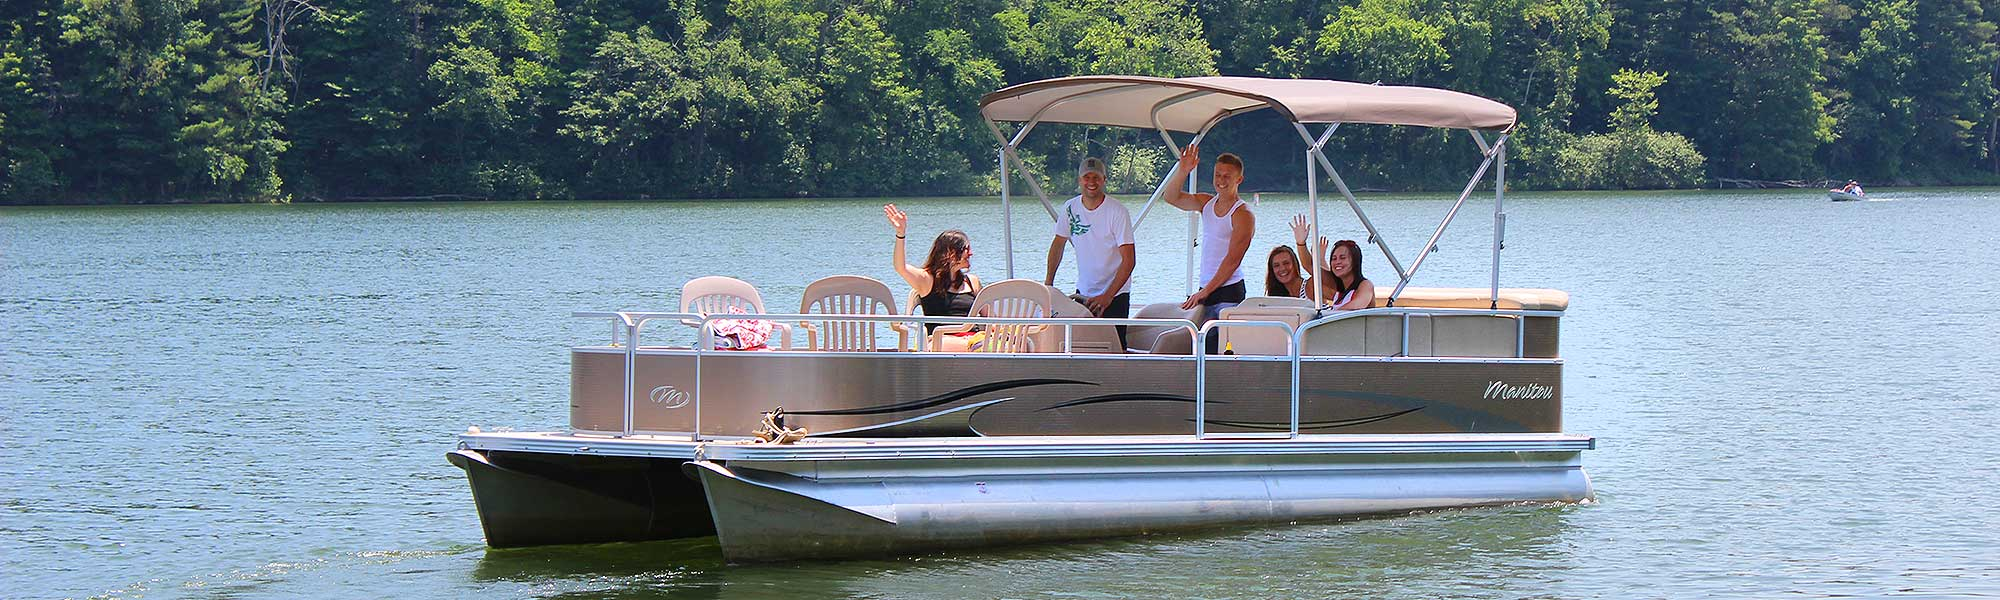 New 2018 Pontoon Rental Fleet!